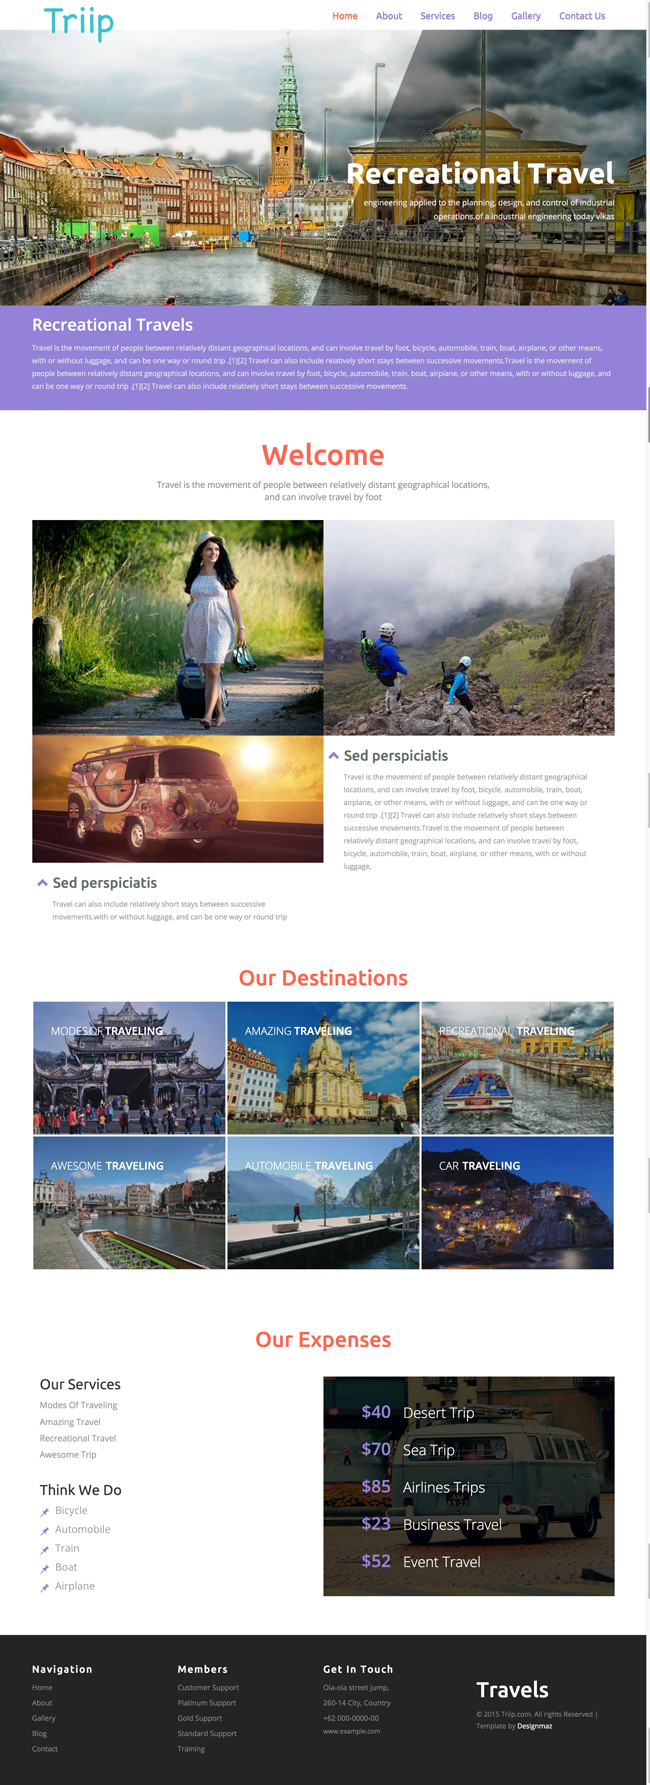 Triip - Free HTML5 CSS3 Travel Agency Template